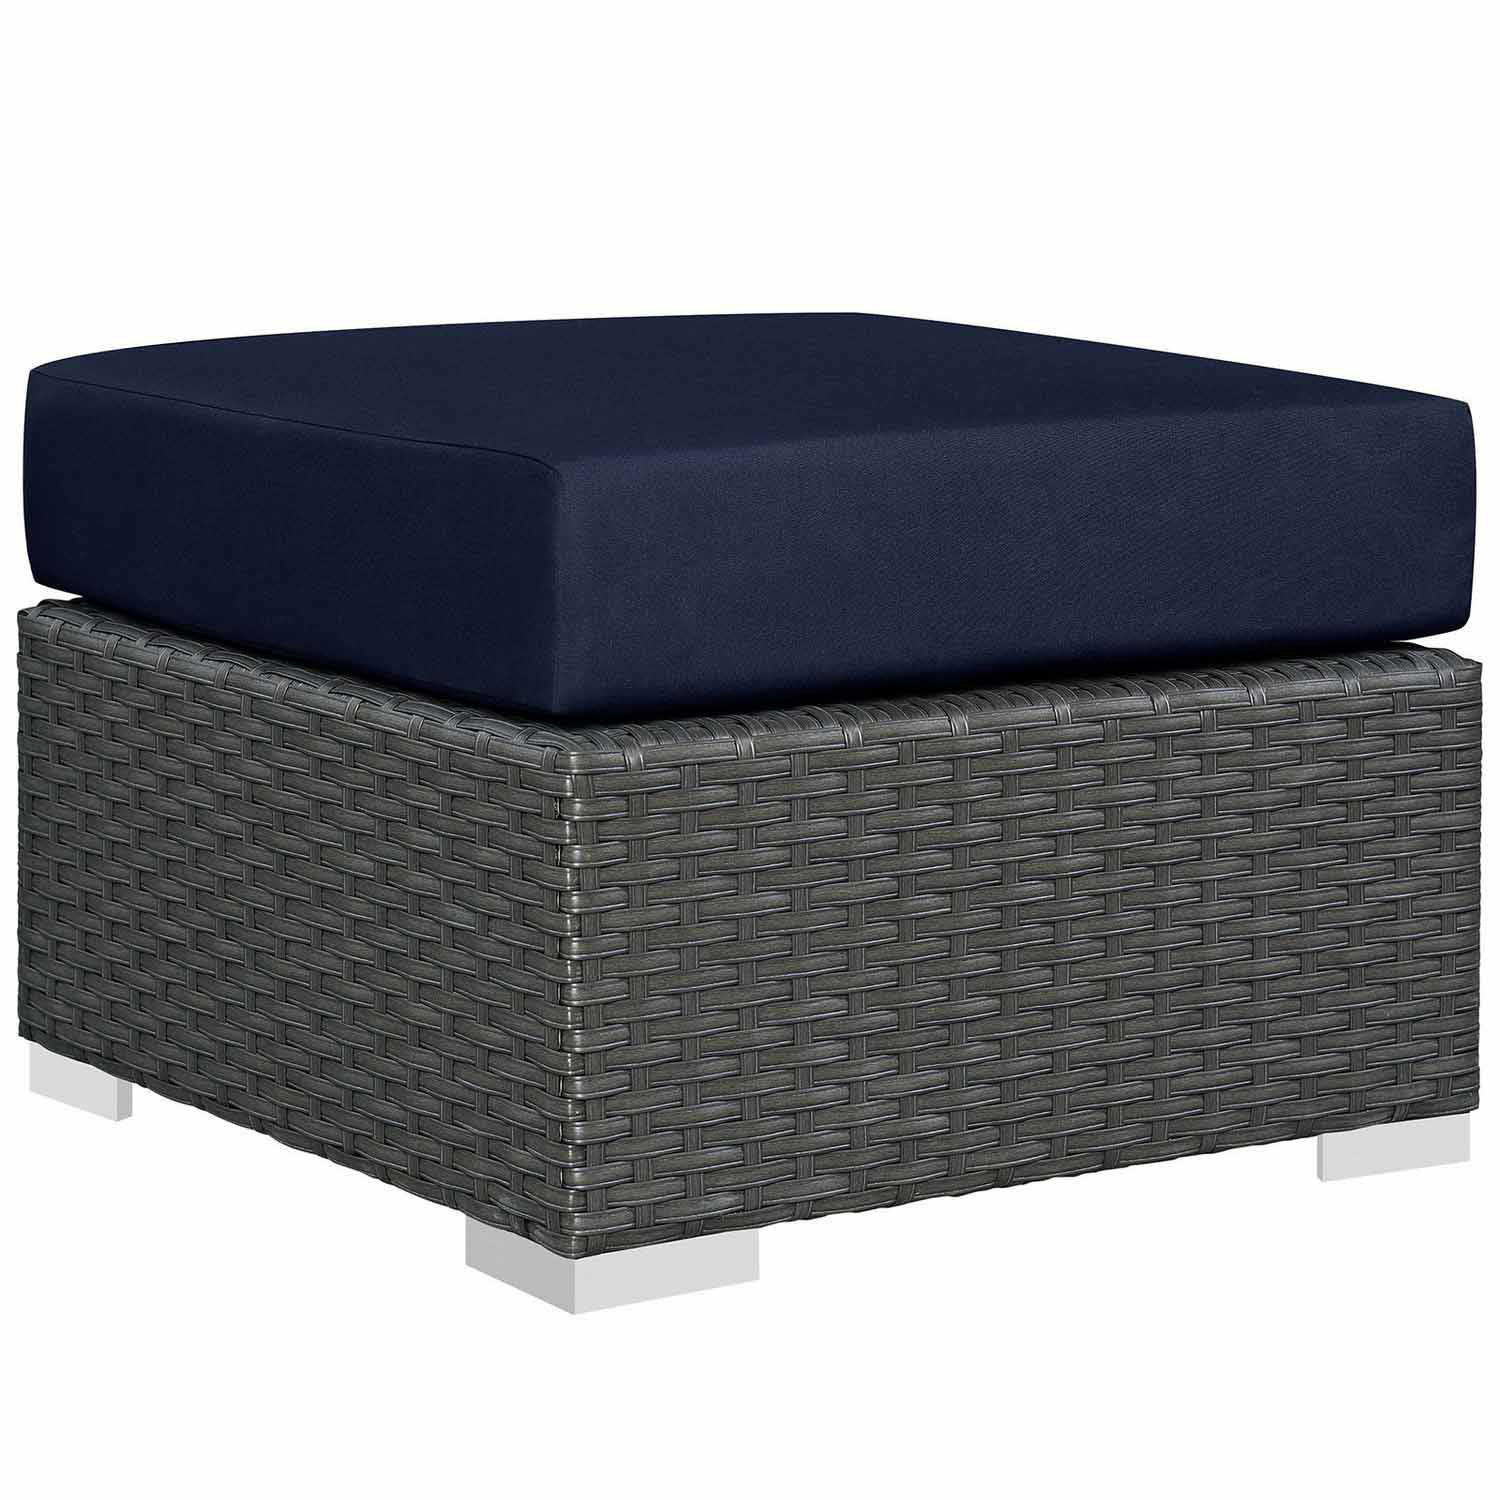 Modway Sojourn Outdoor Patio Sunbrella Ottoman - Canvas Navy